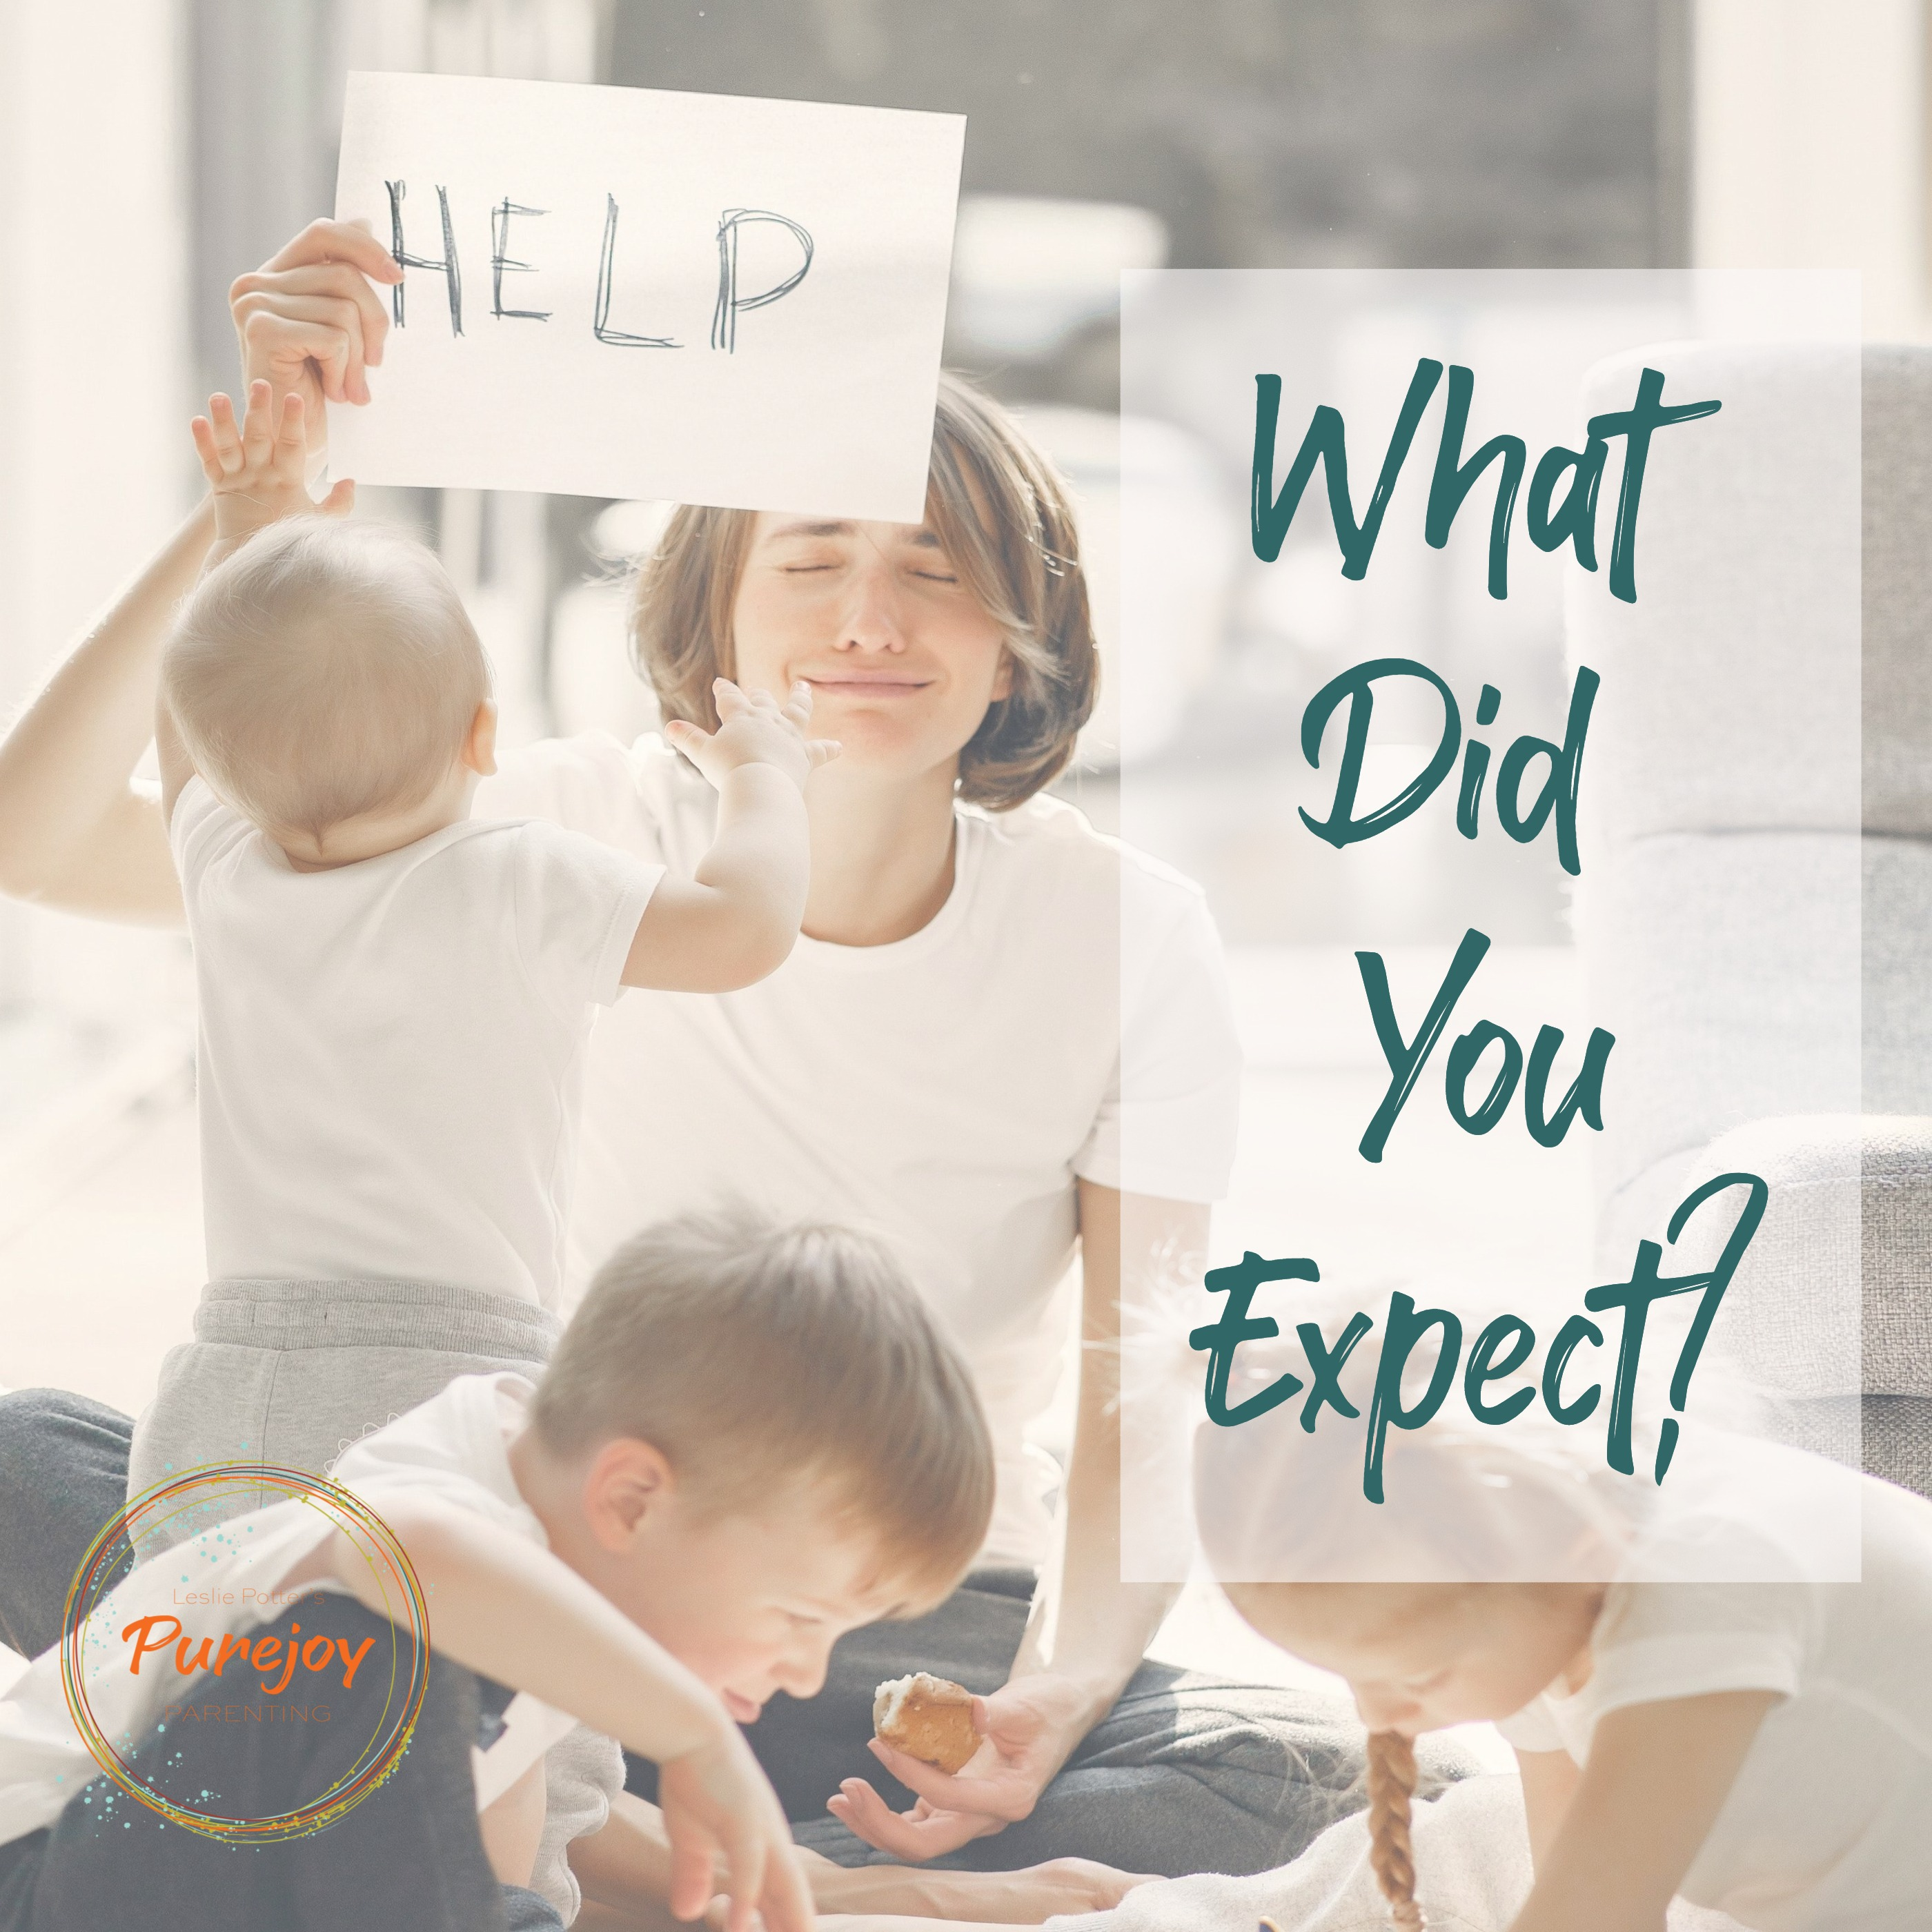 Purejoy Parenting Popup Call: What Did You Expect?